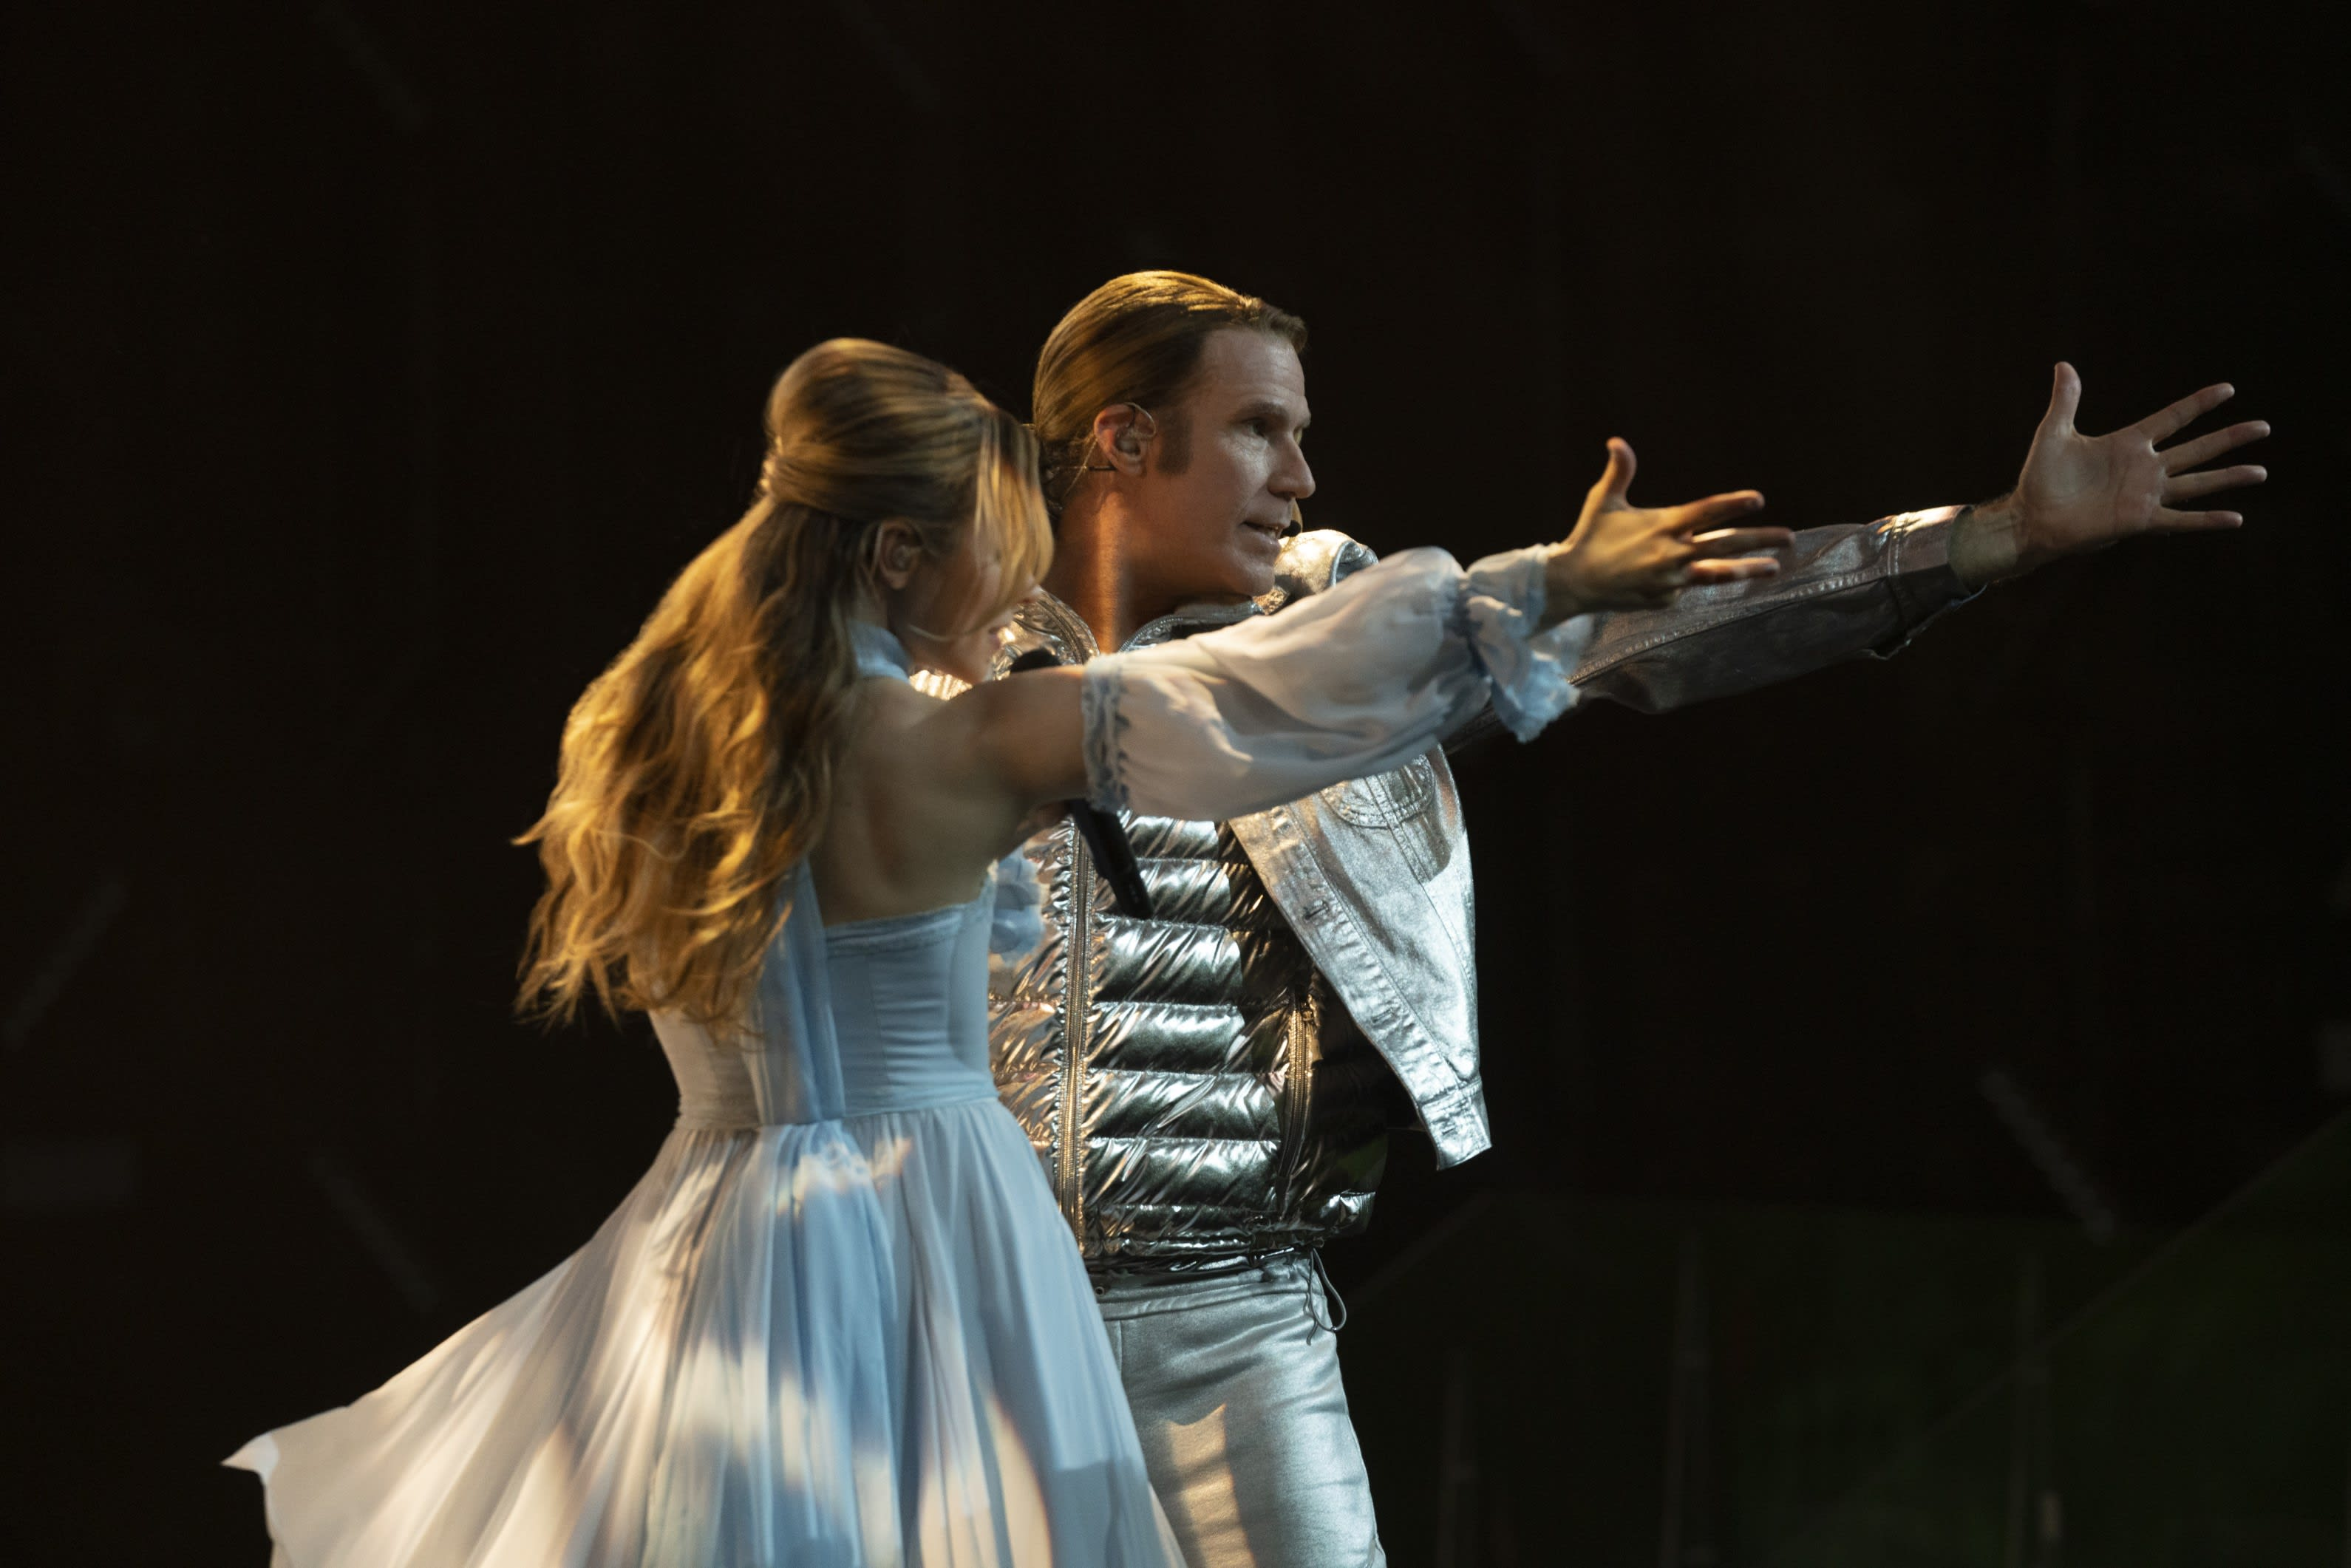 Will Ferrell and Rachel McAdams dancing on stage at Eurovision while they sing together